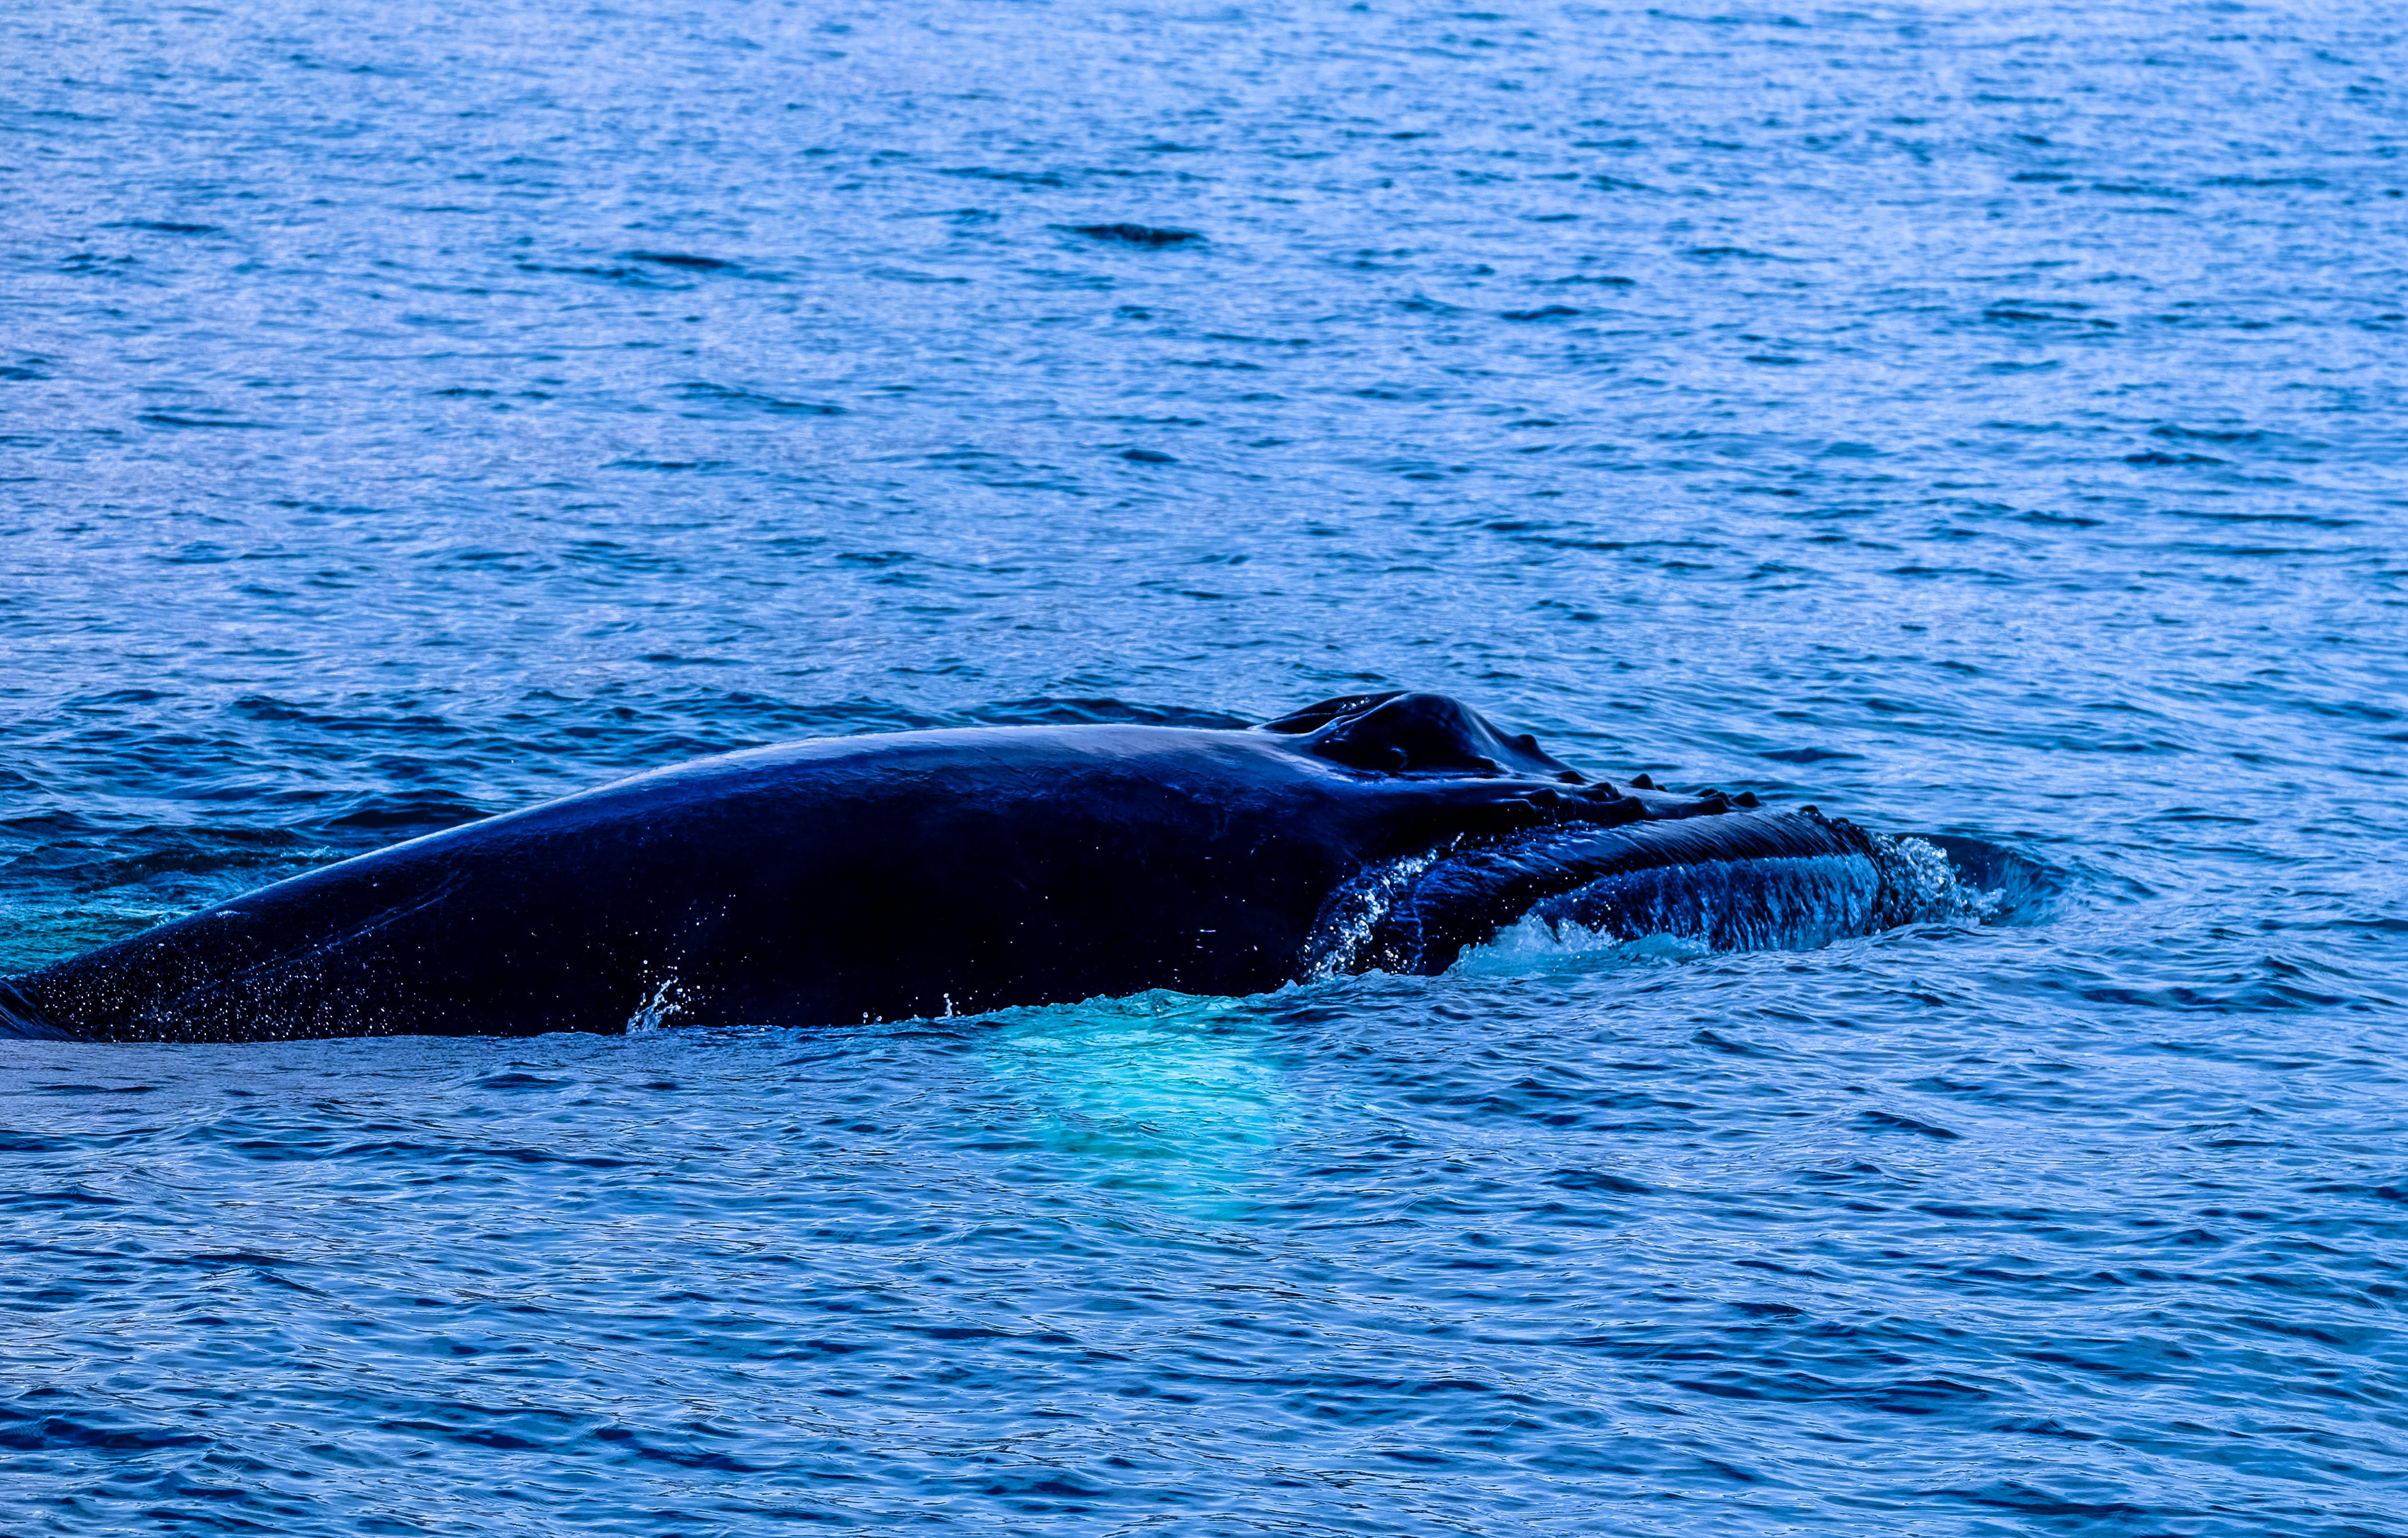 Black Whale in Body of Water